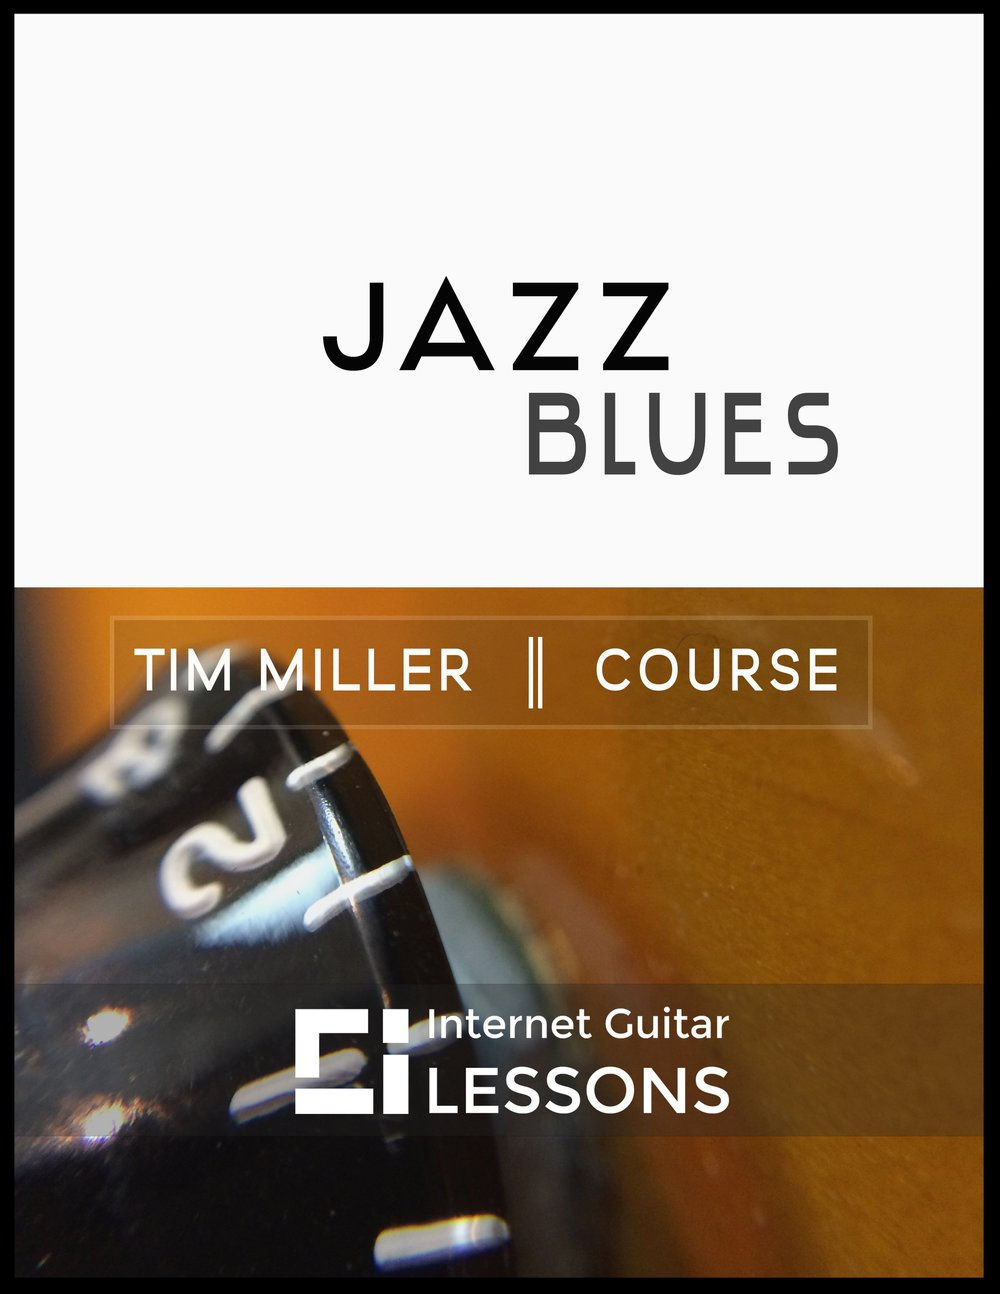 Jazz Blues 1.17 flat.jpg